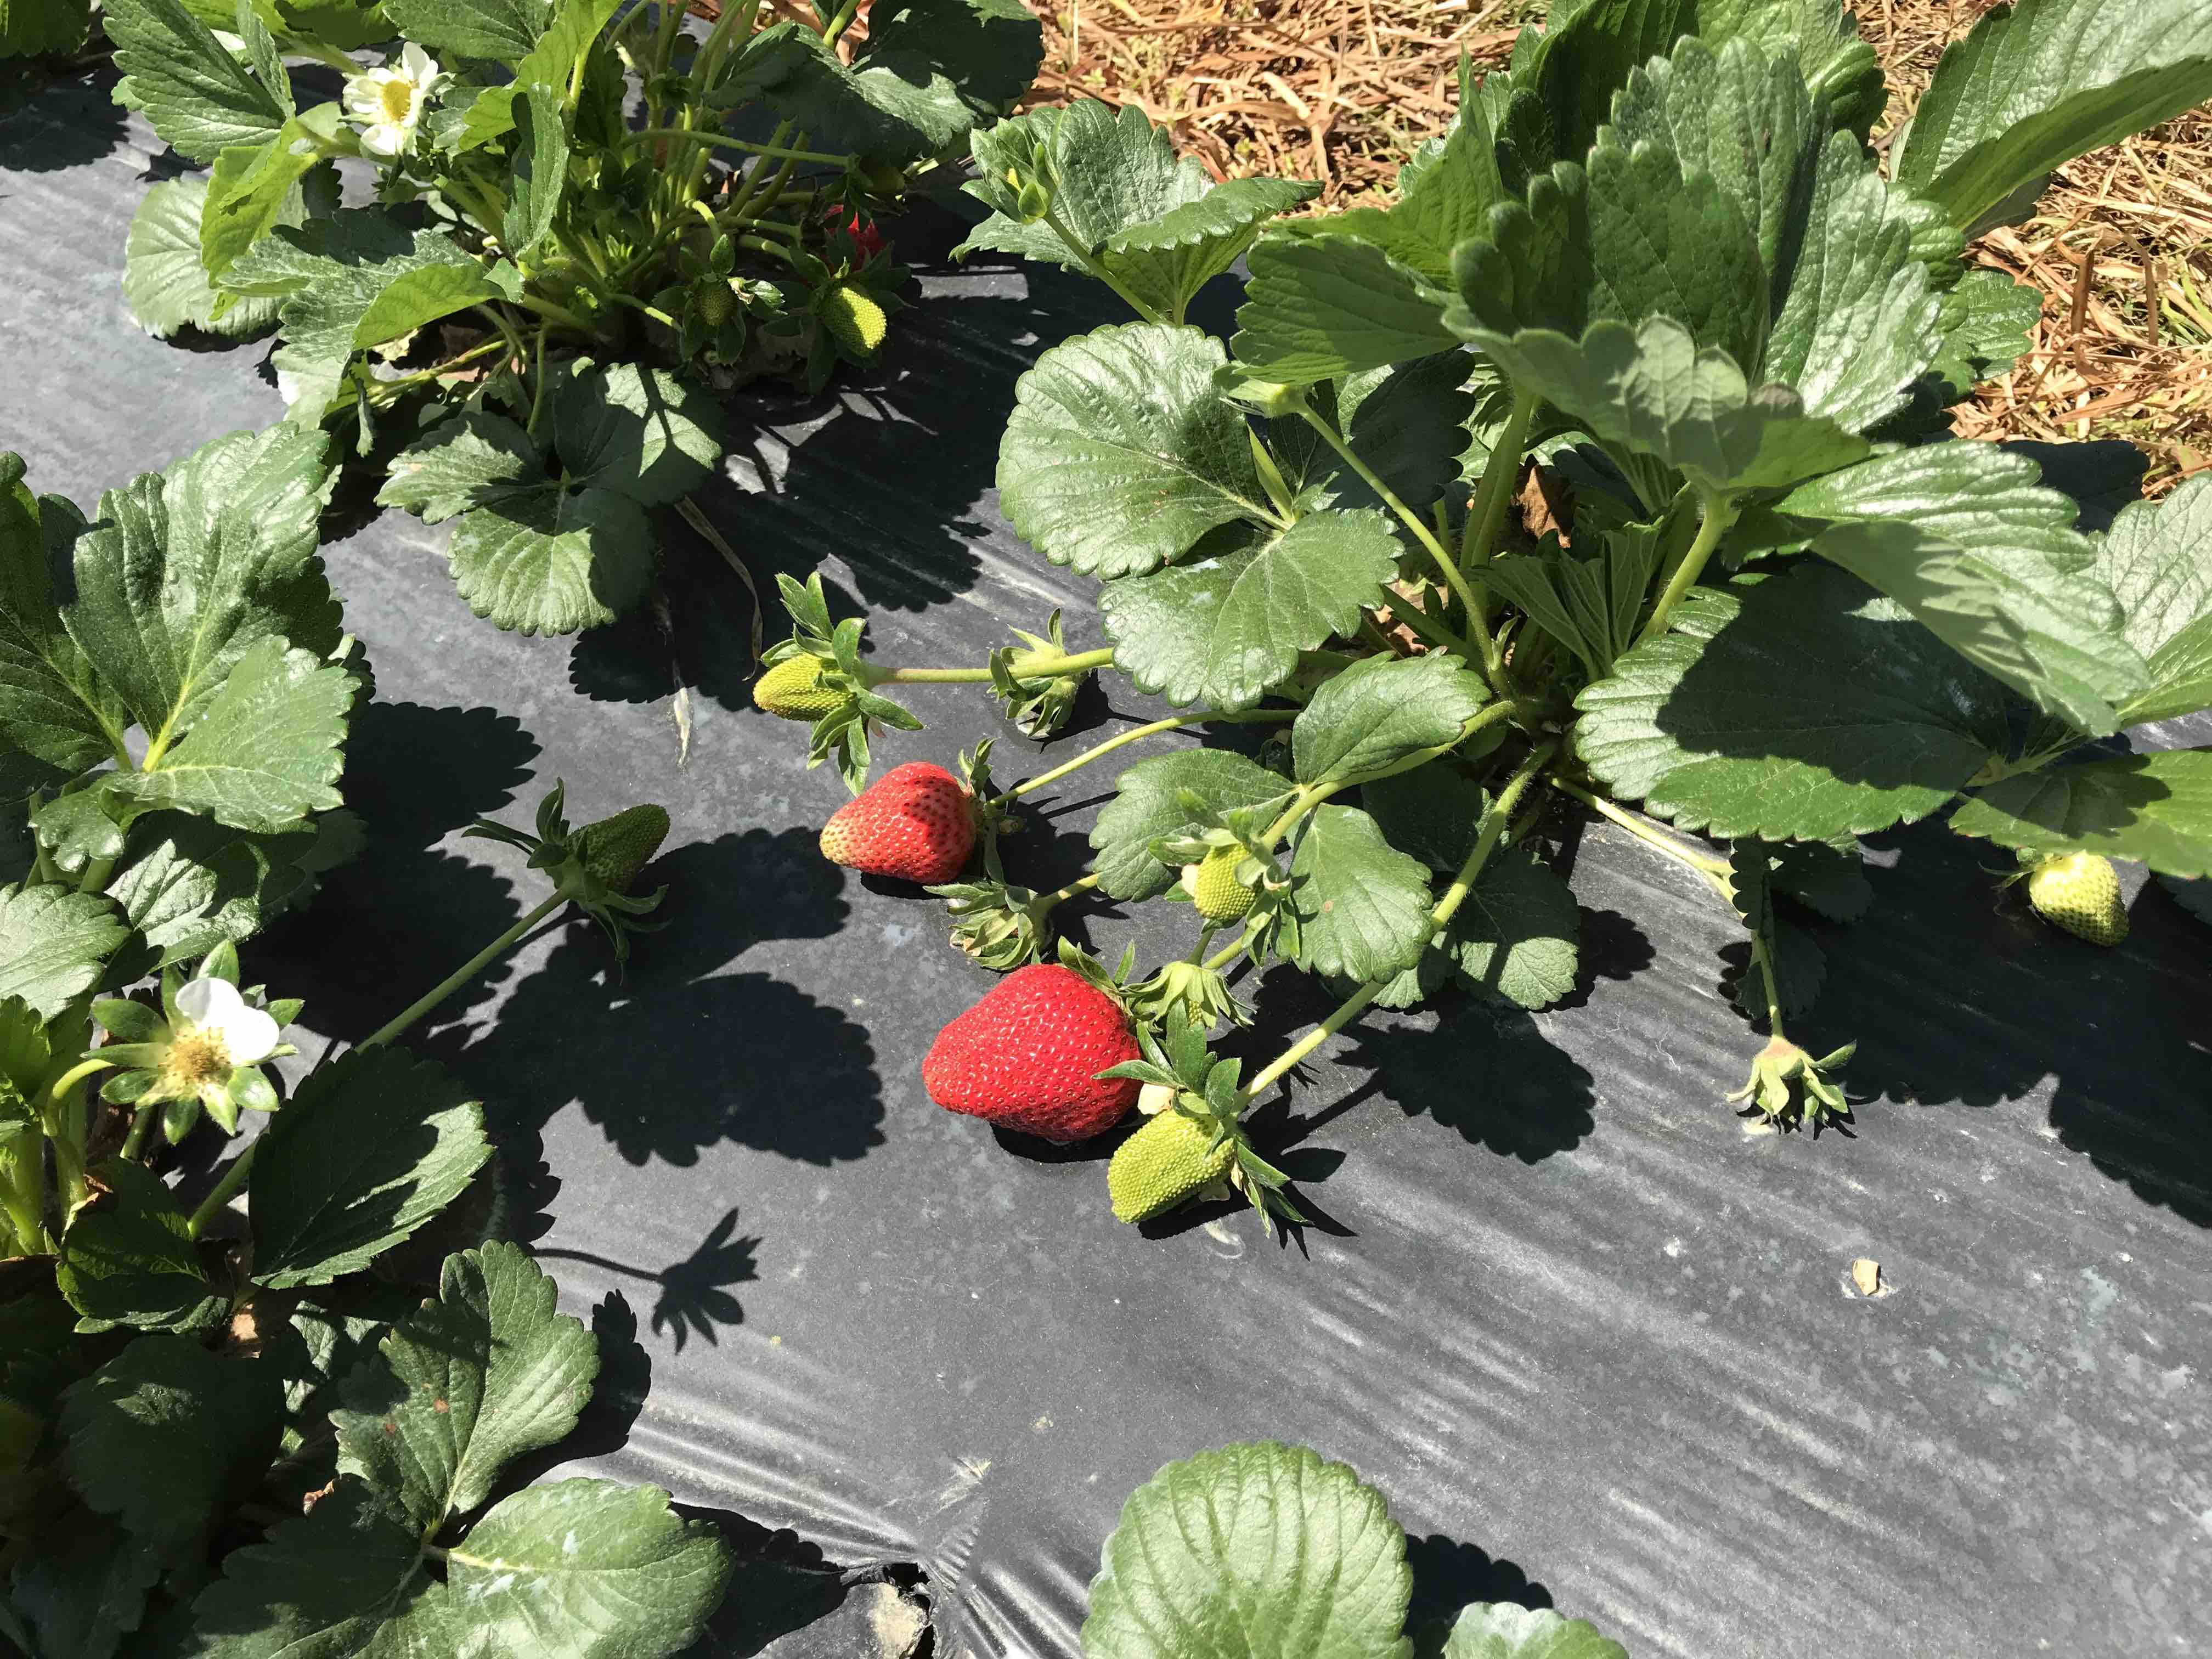 strawberry plants with fruit